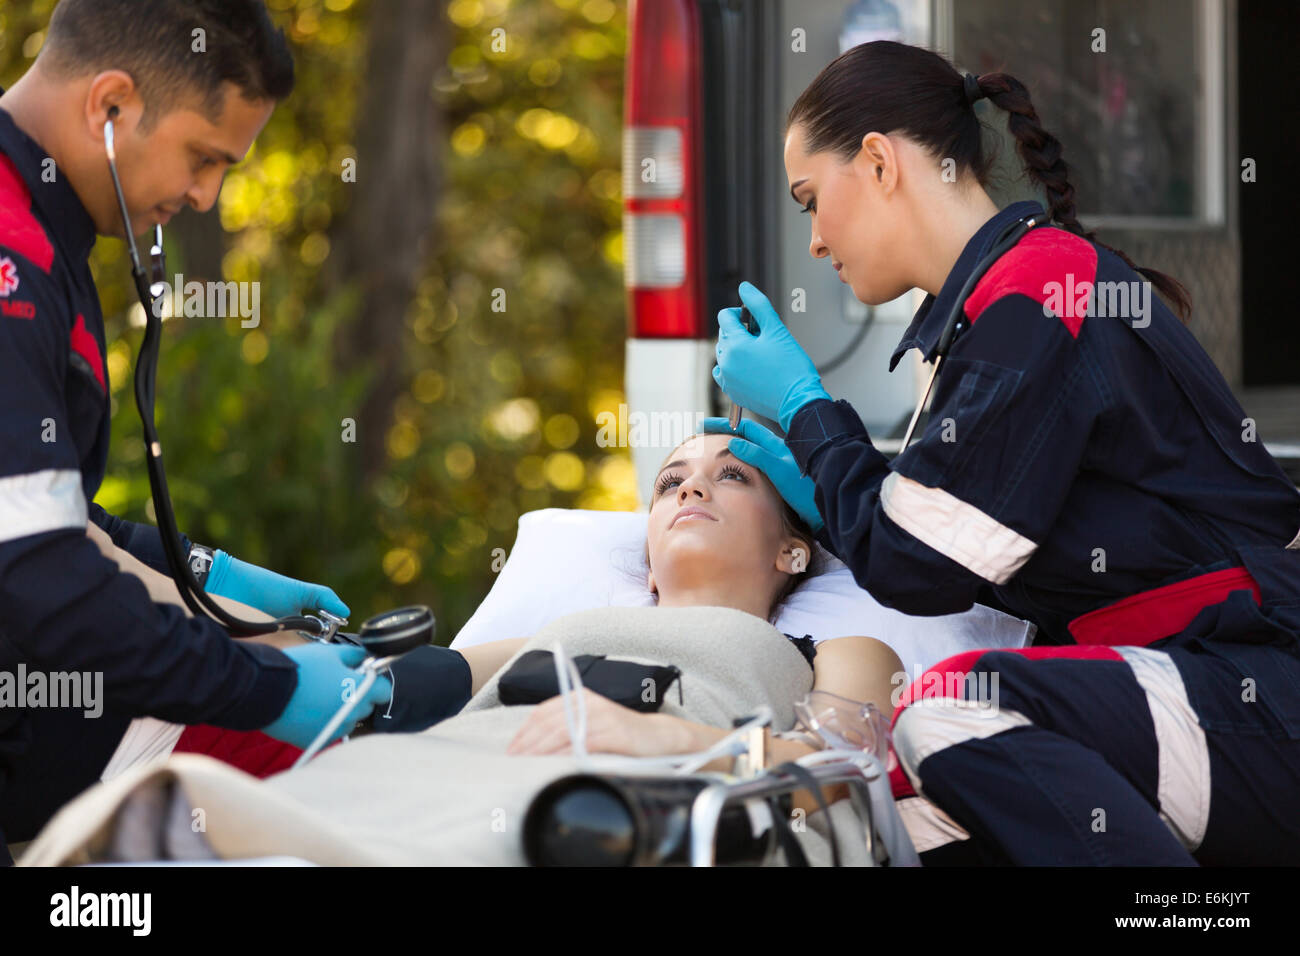 team of emergency medical technicians checking patients vital signs - Stock Image